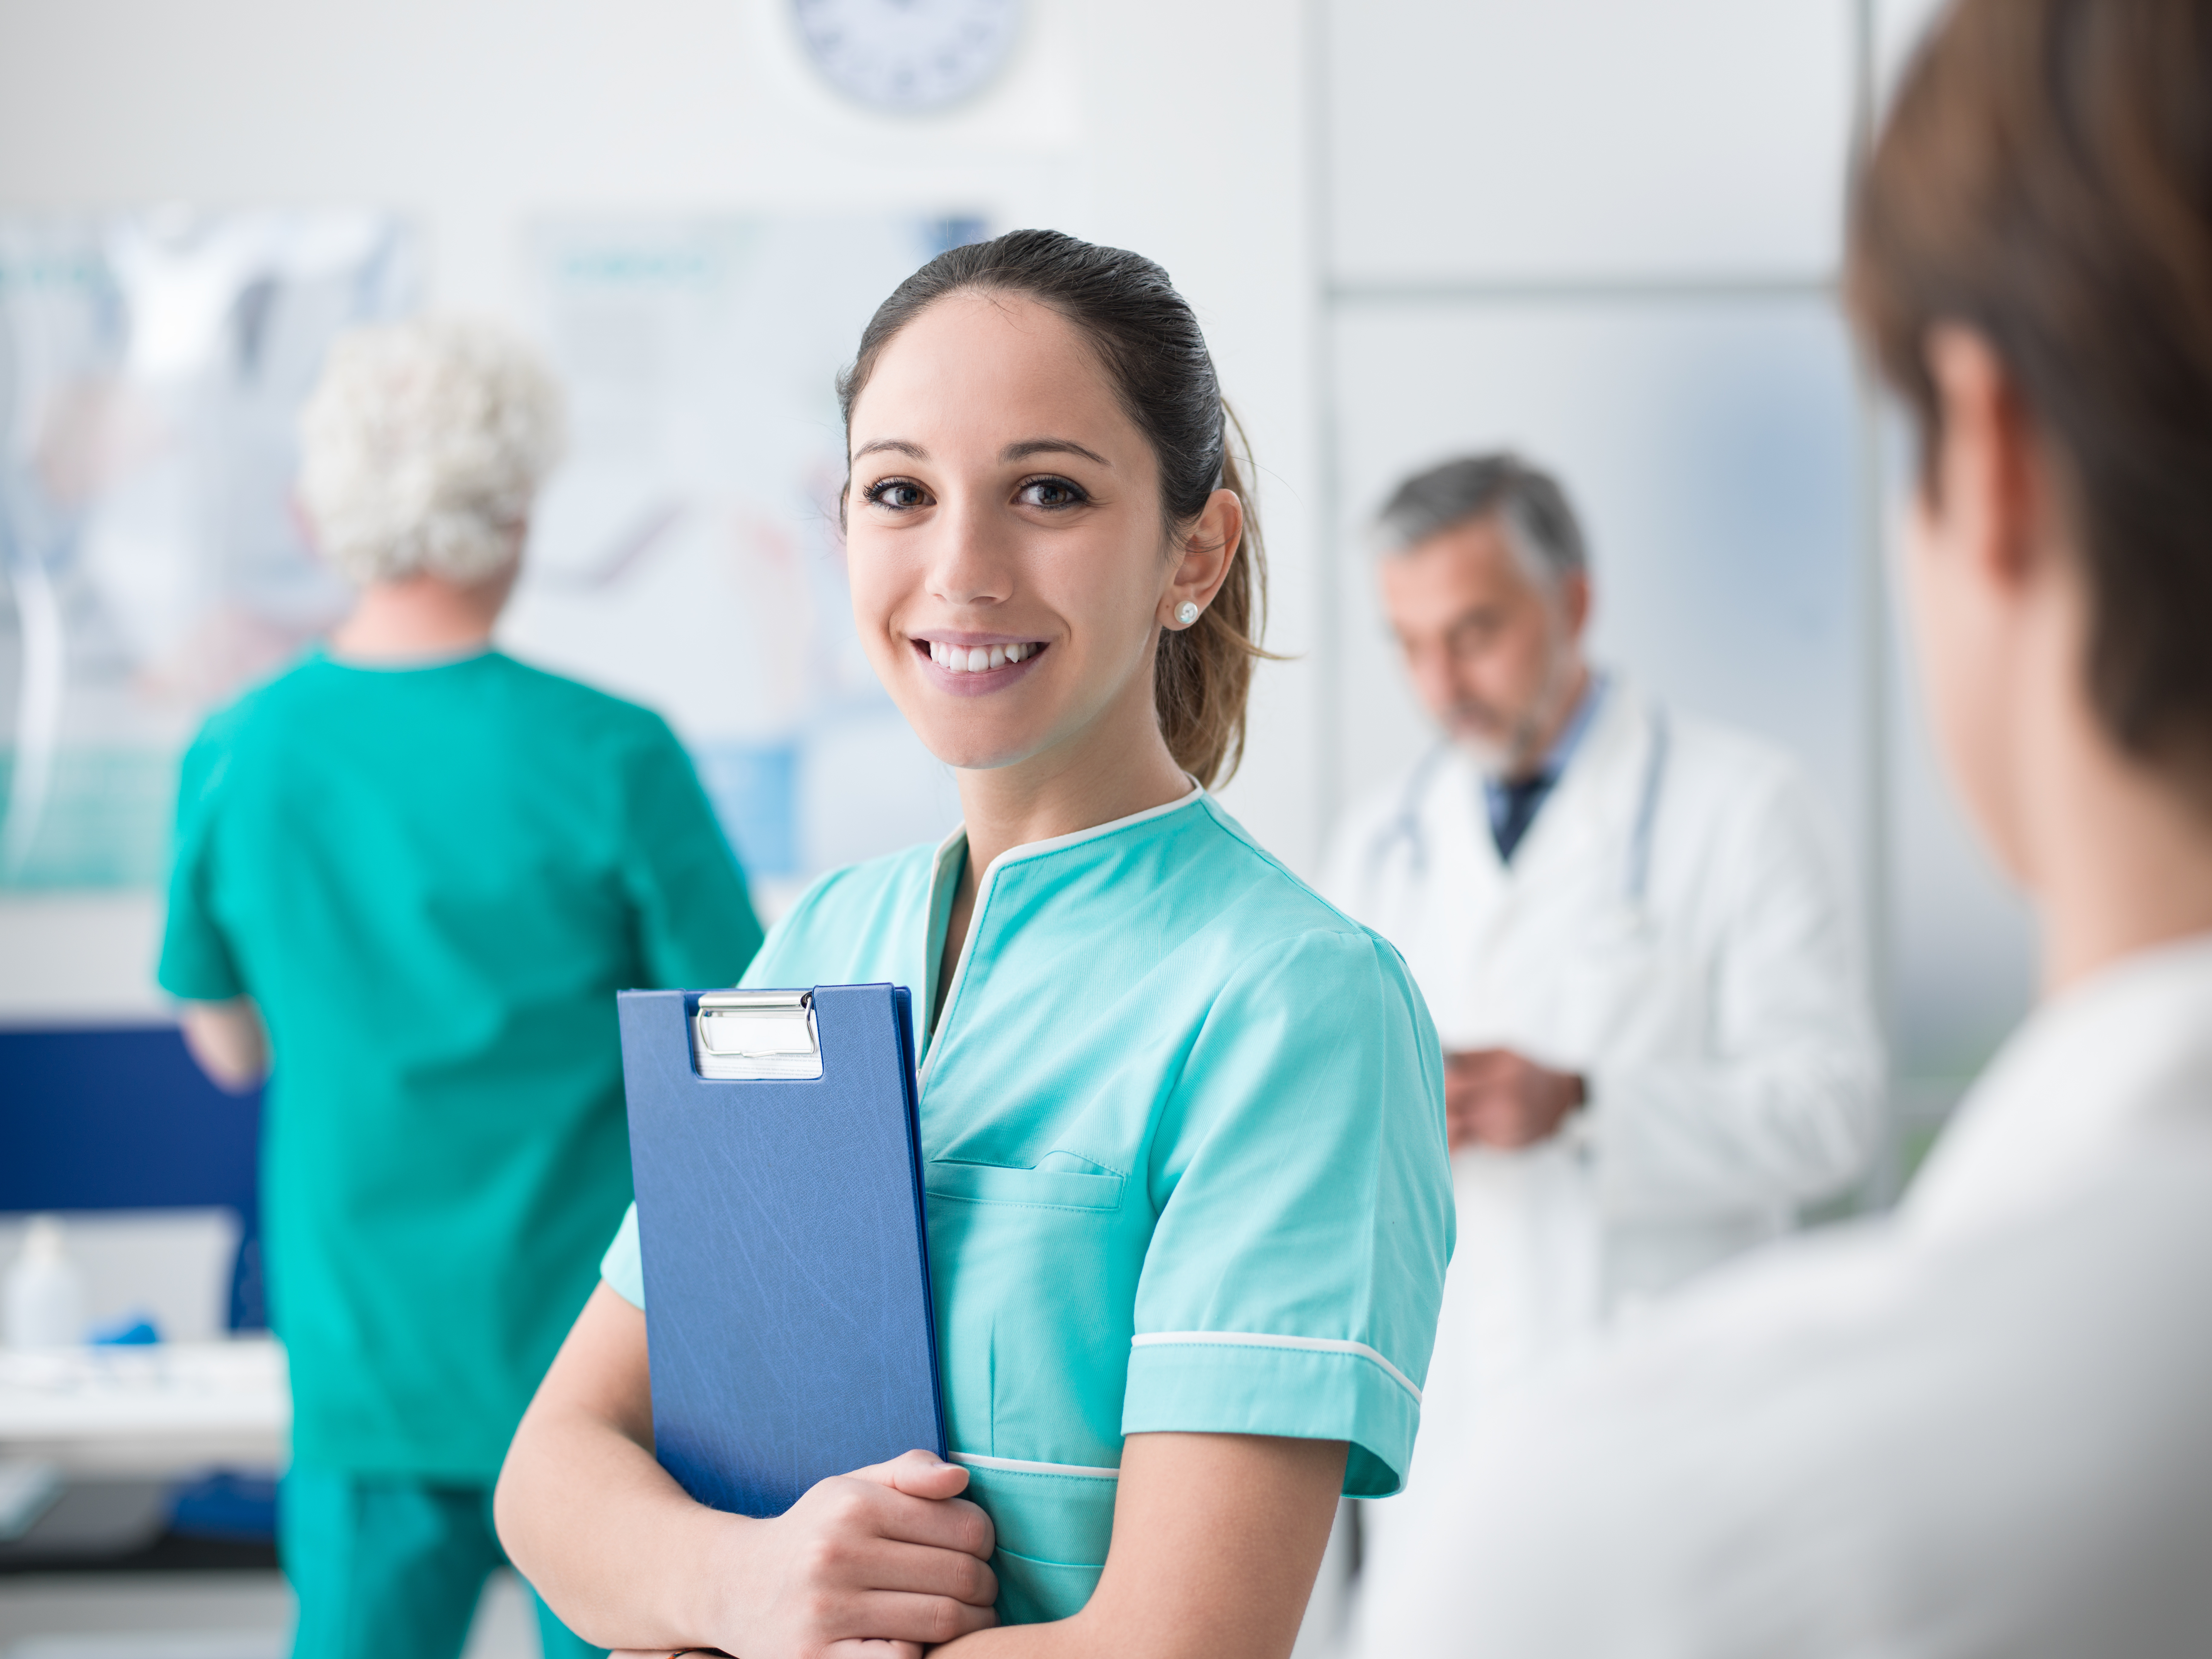 How Nurses Will Impact Patient Care in 2020